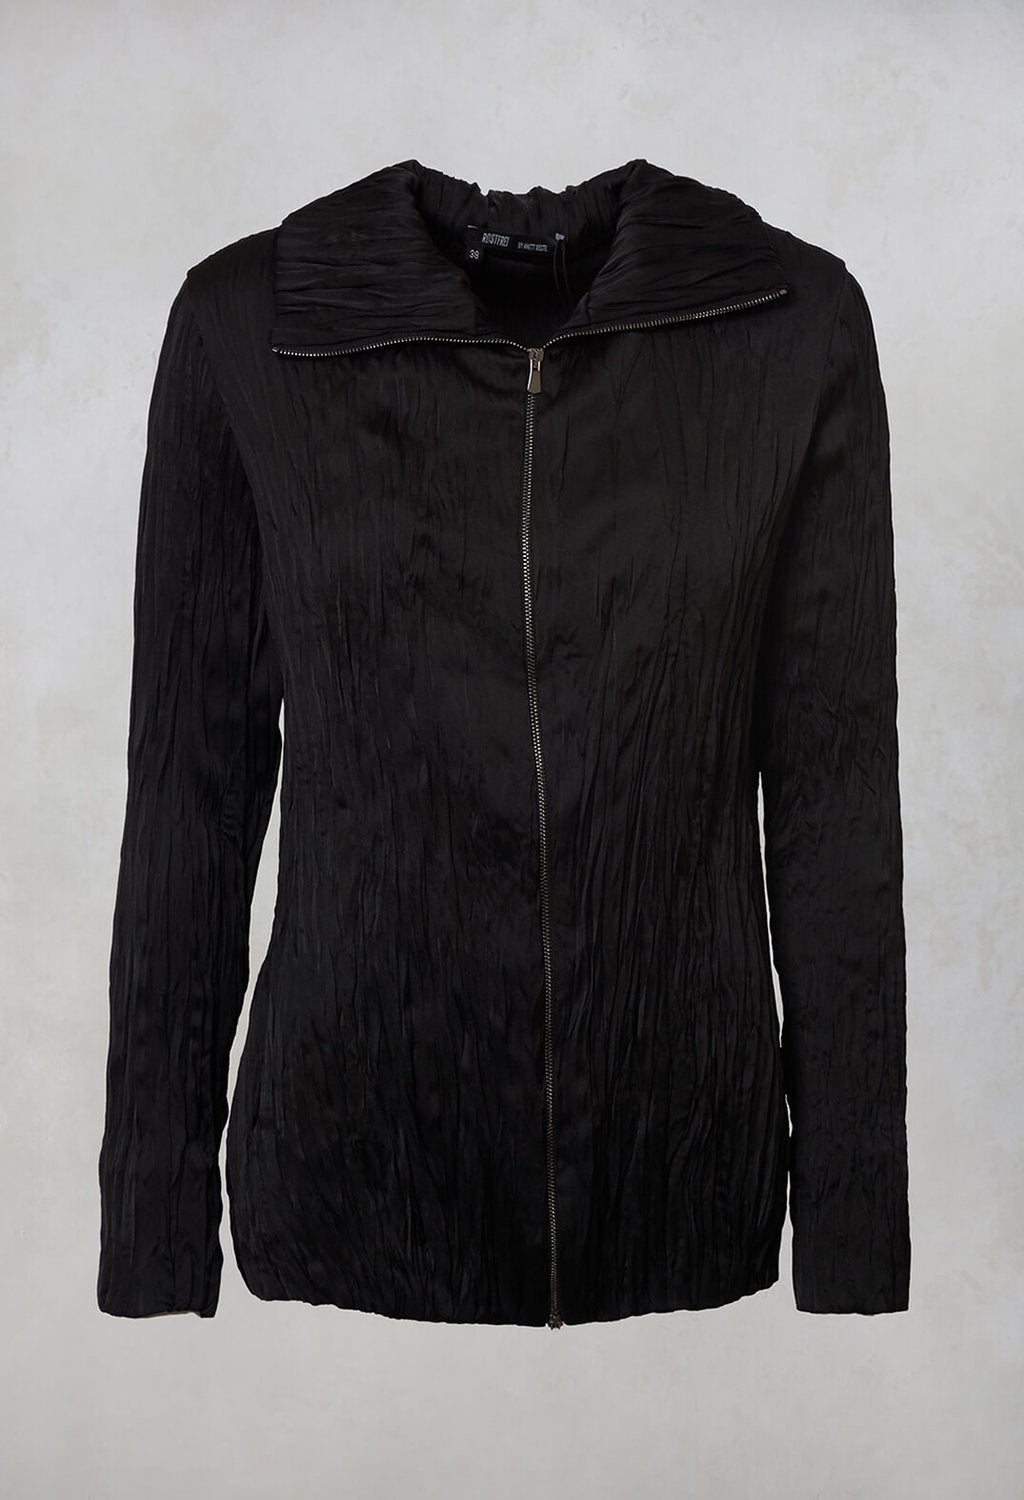 Crinkled Zipped Up Jacket in Black